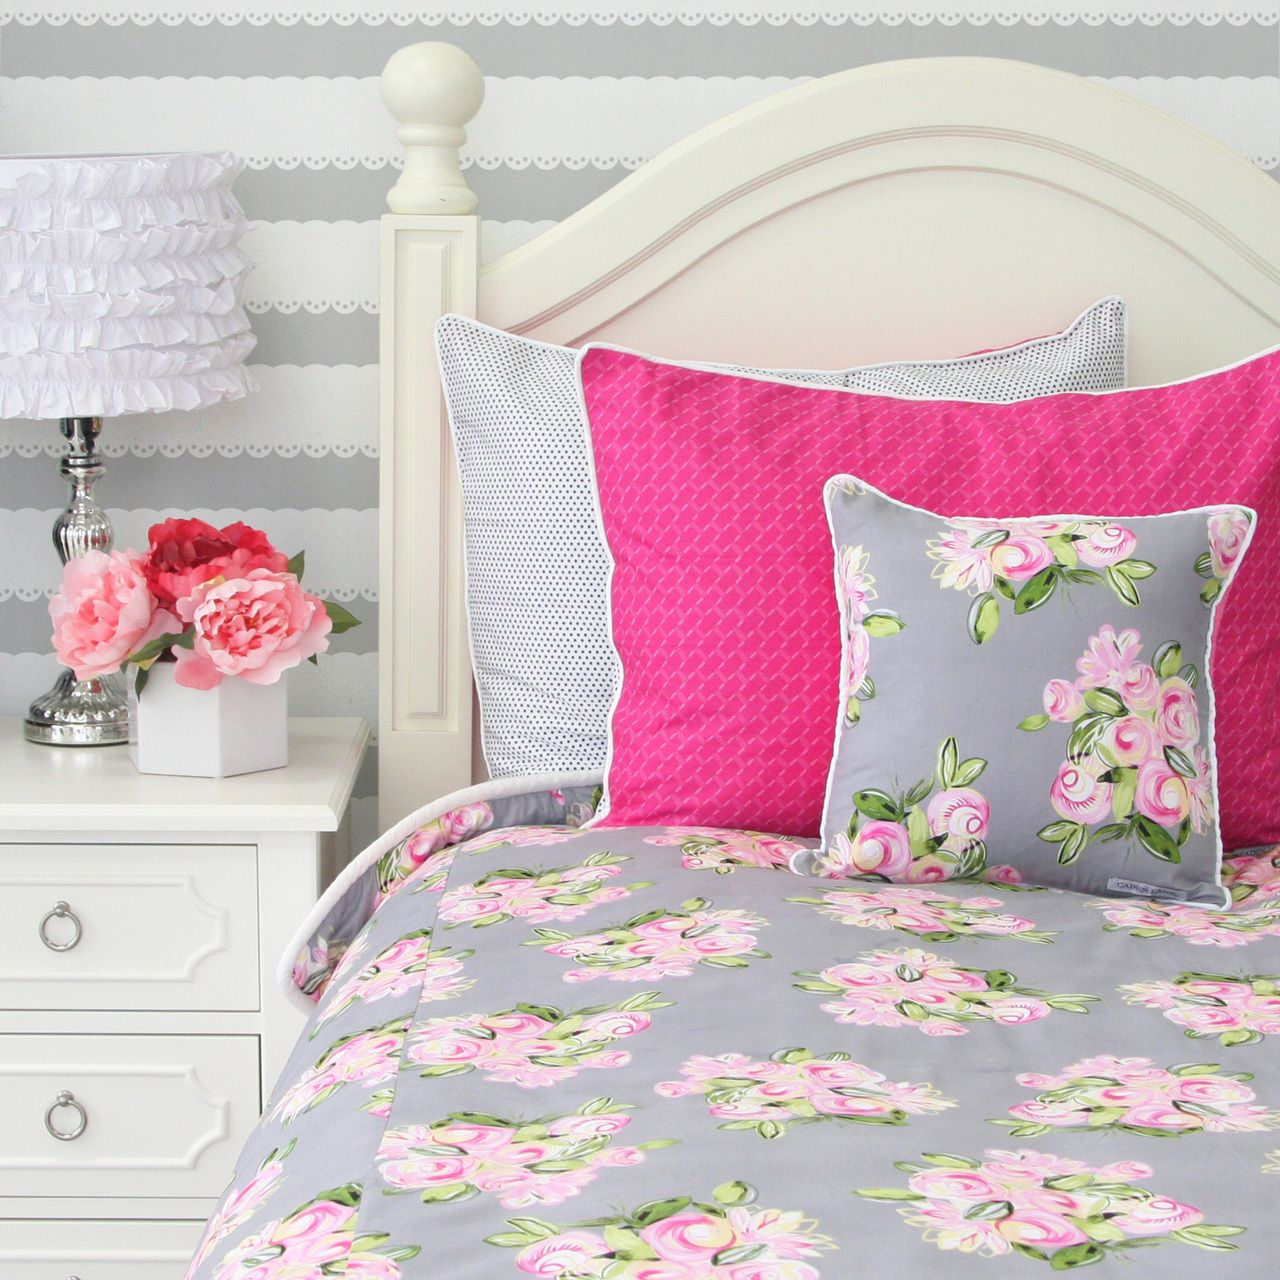 Floral bedding tumblr - Love This Floral Bedding Maybe Teal And Purple With This Grey For A New Room